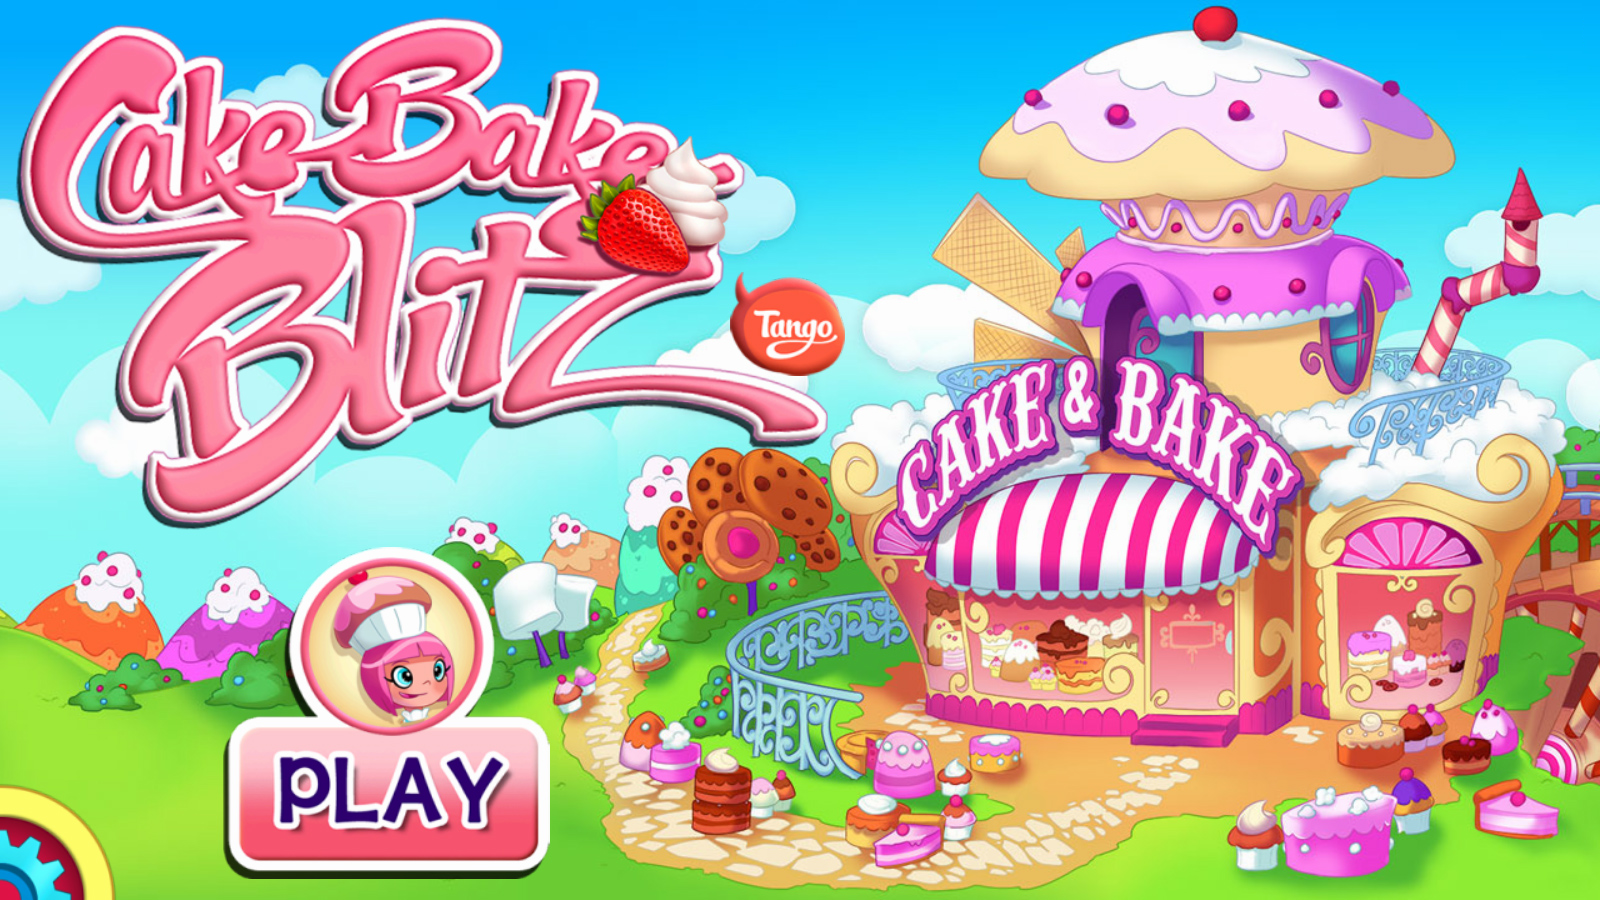 Cake Bake Blitz for Tango- screenshot